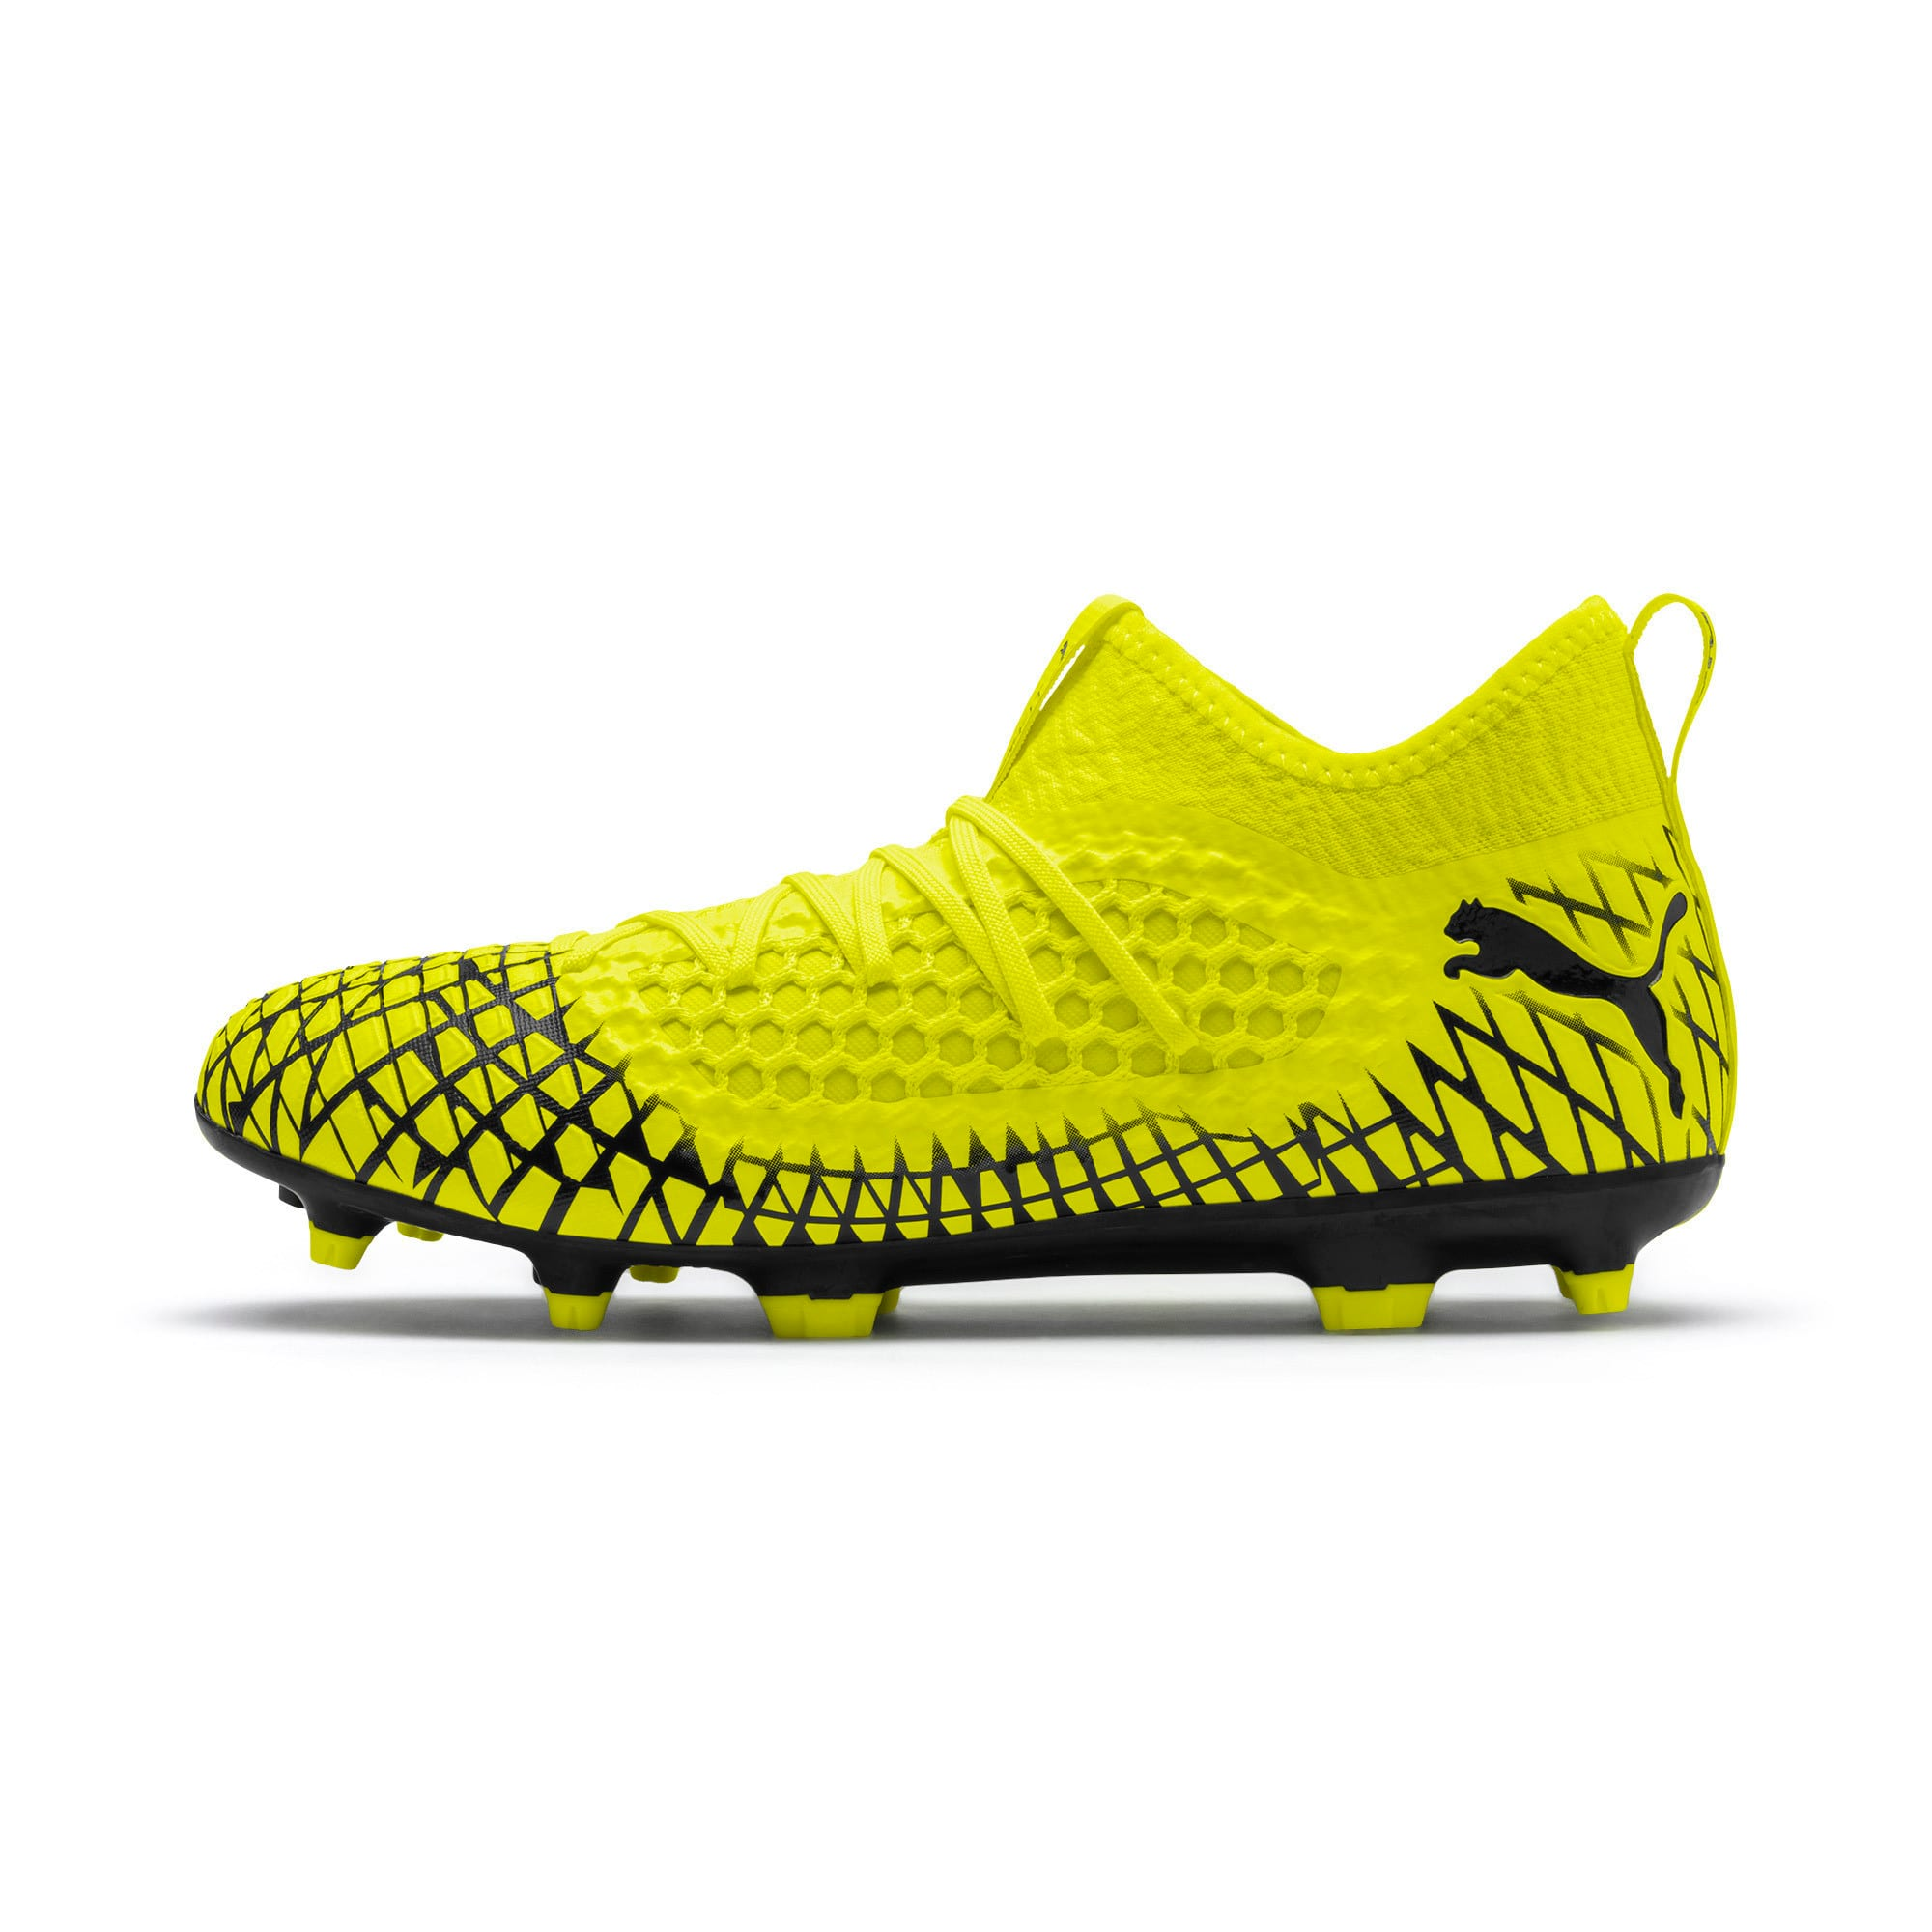 Thumbnail 1 of FUTURE 4.3 NETFIT FG/AG voetbalschoenen voor heren, Yellow Alert-Puma Black, medium